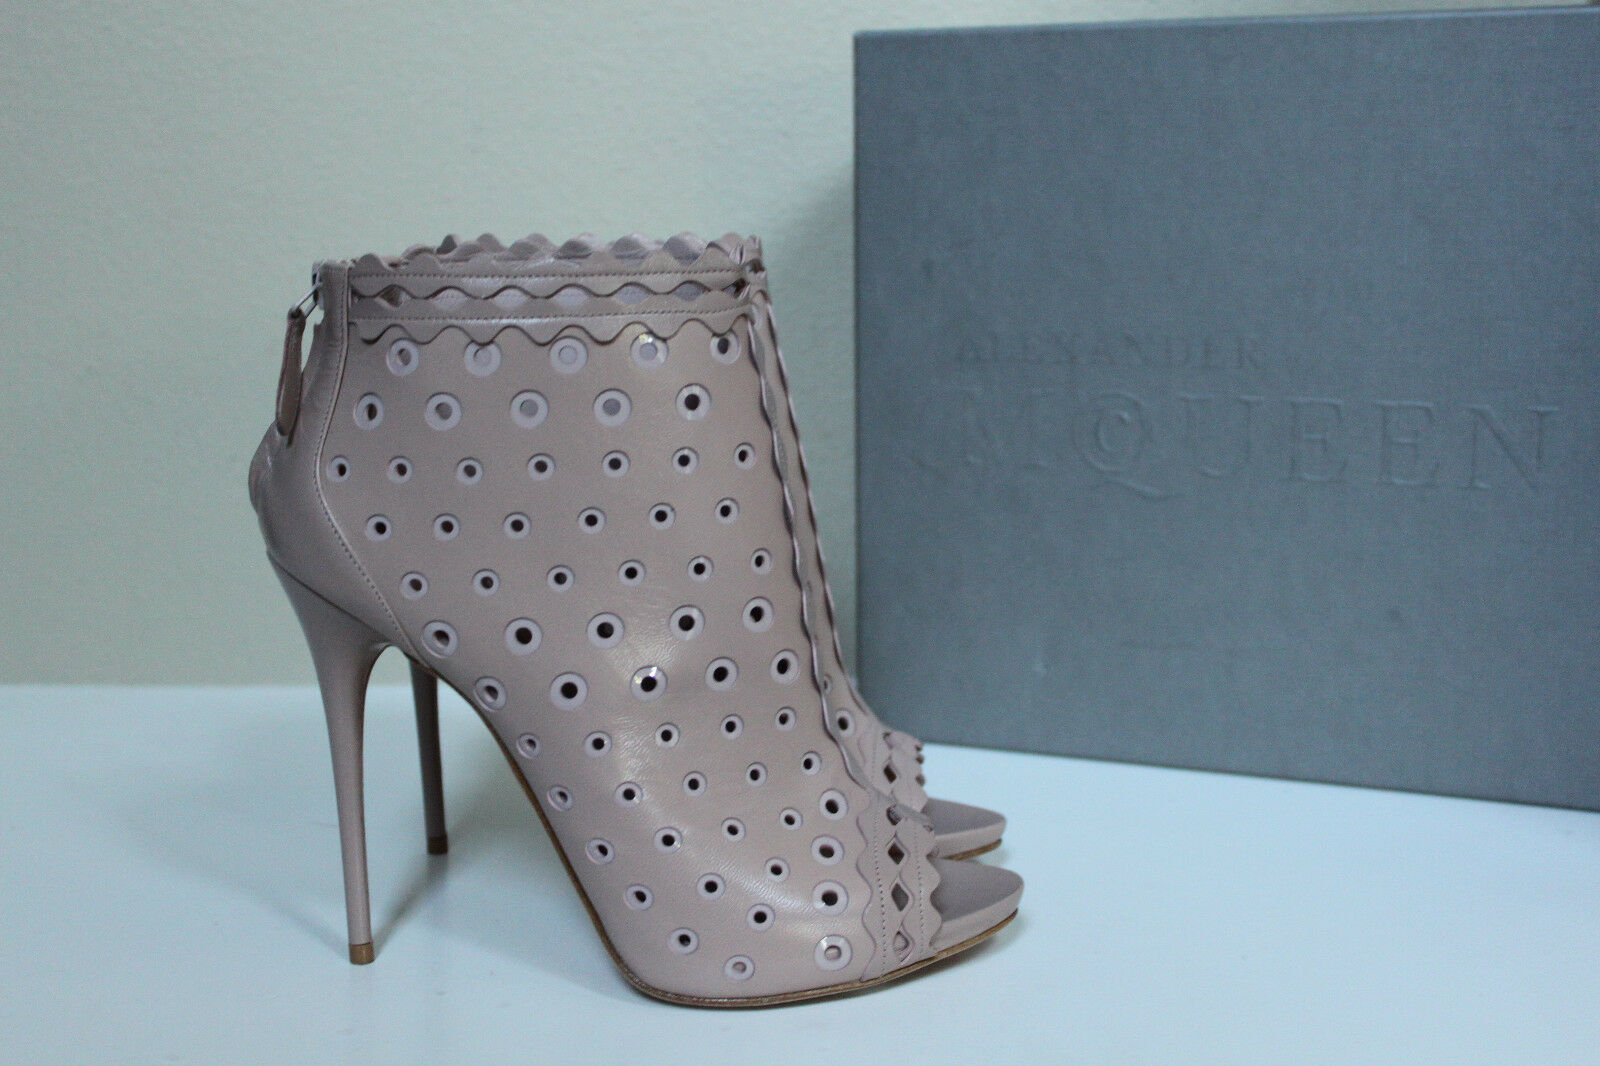 New 9 sz 9 New / 39 Alexander McQueen Blush Leather Ankle Caged Boot Sandal Pump Shoes 220424